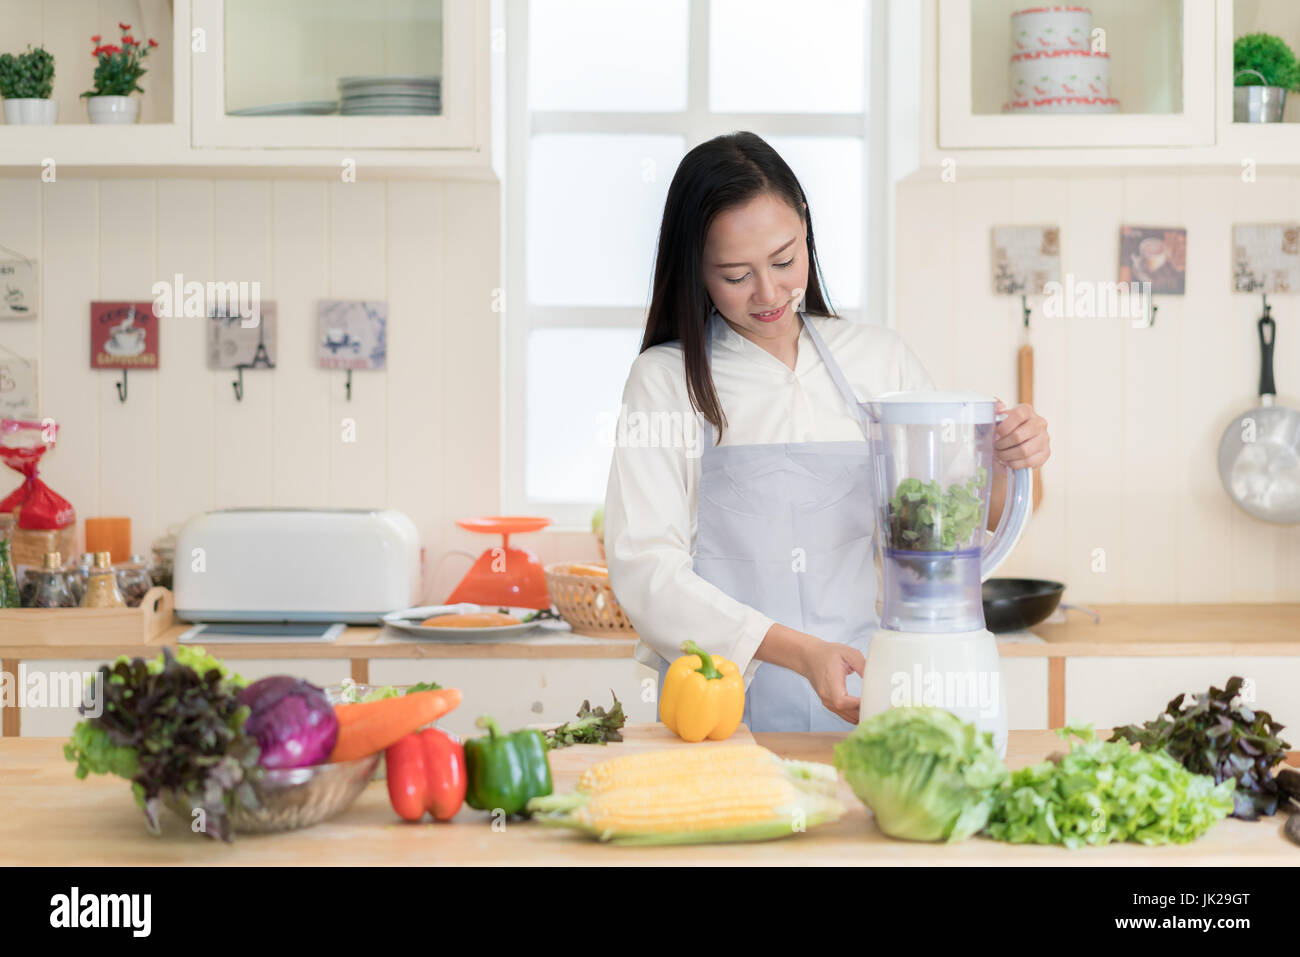 Vegetable smoothie. Asian woman making green smoothies with blender home in kitchen. Healthy raw eating lifestyle - Stock Image